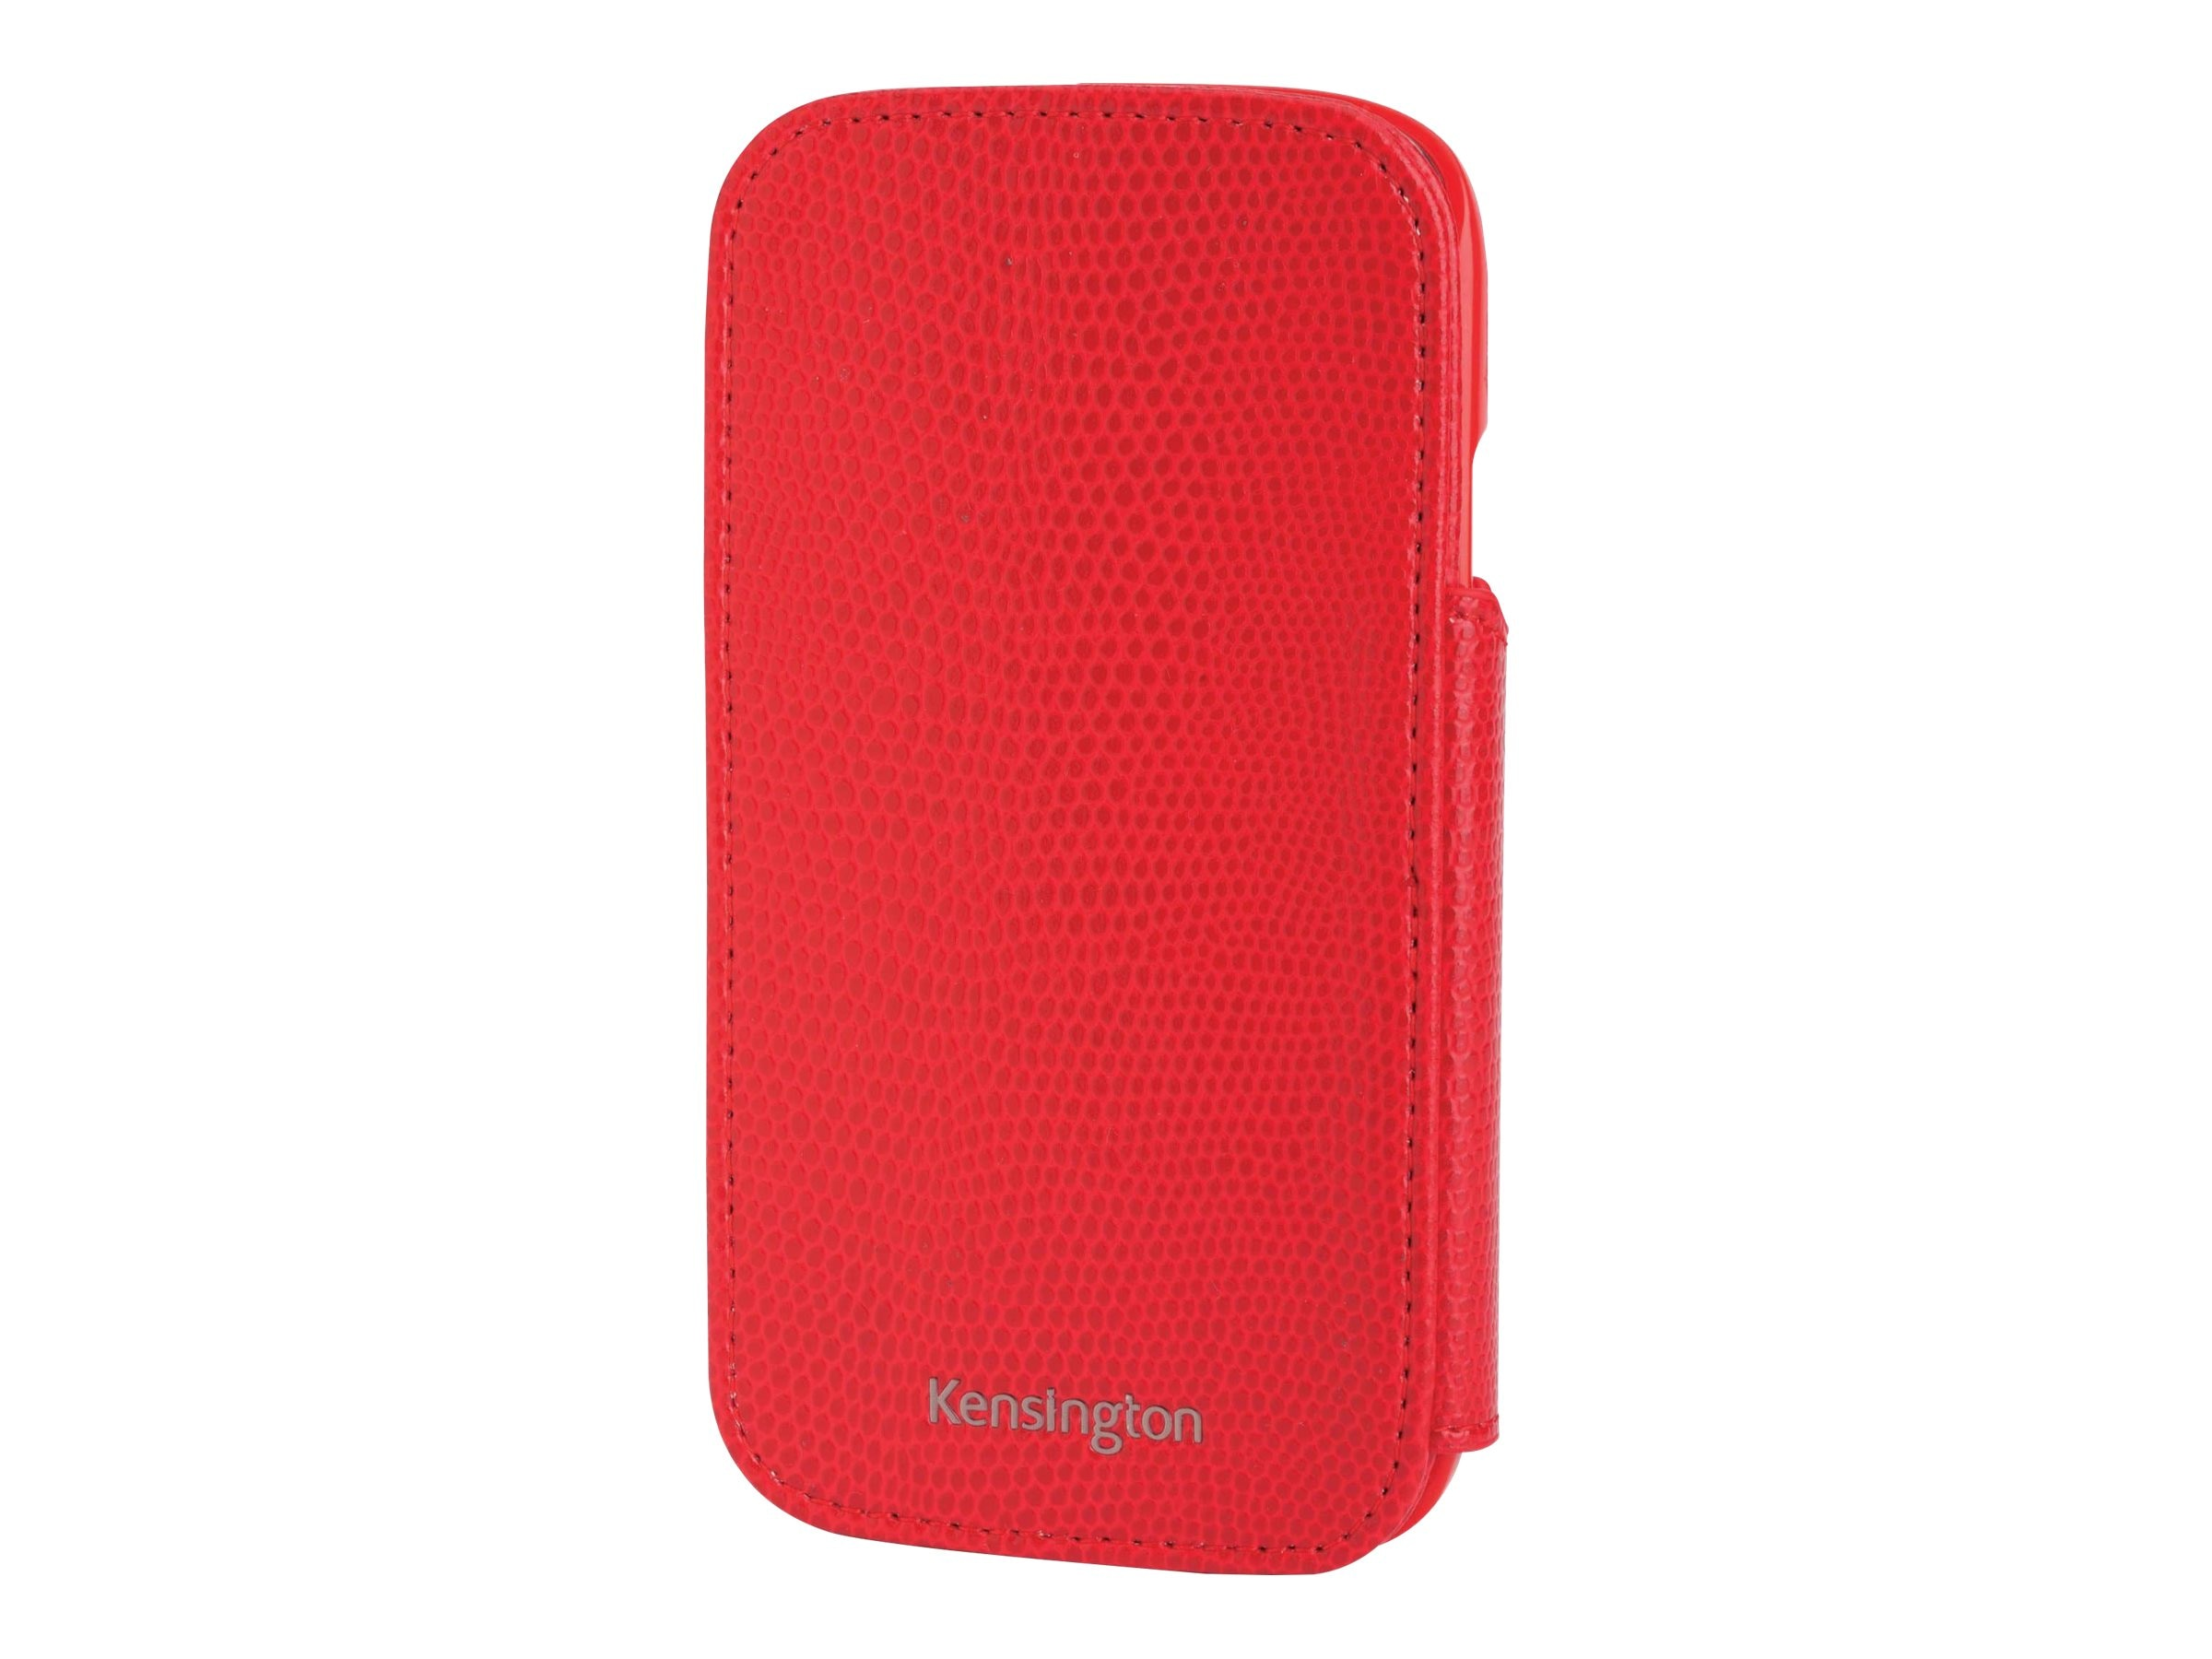 Kensington Portafolio Duo Wallet for Samsung Galaxy S III, Red Snake